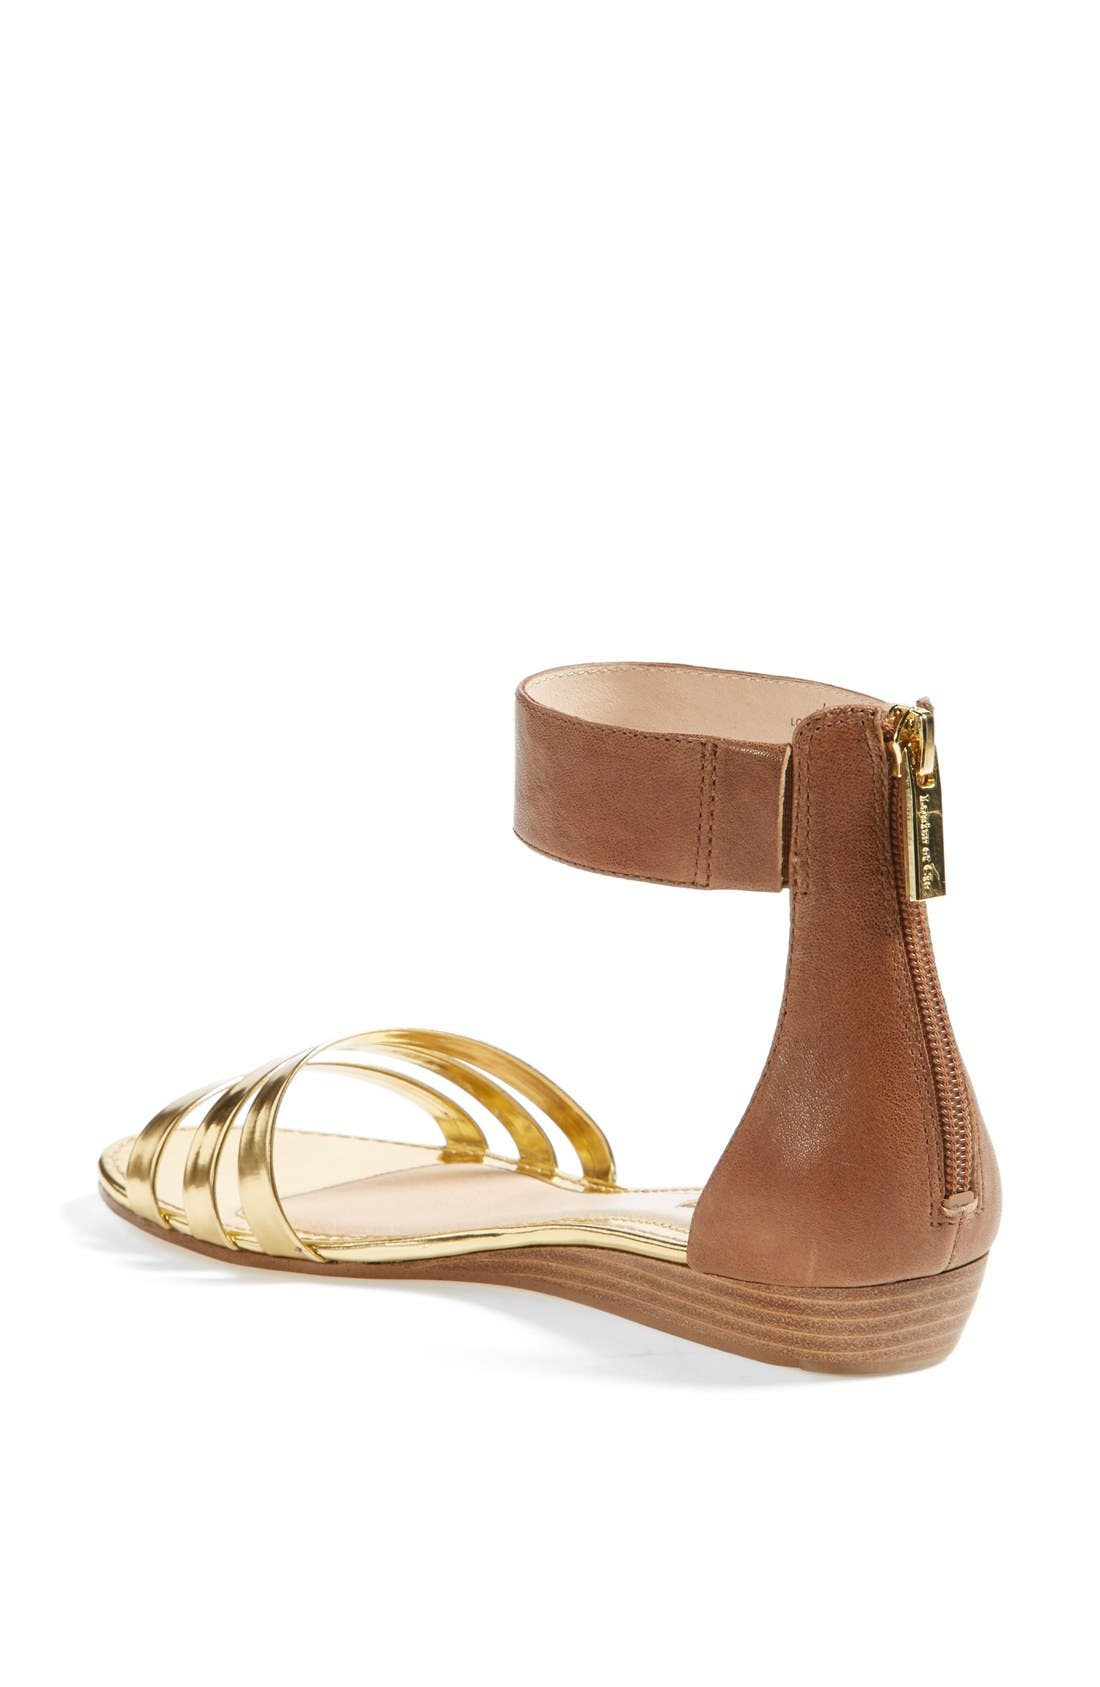 Alternate Image 2  - LOUISE ET CIE OROYO WEDGE SANDAL